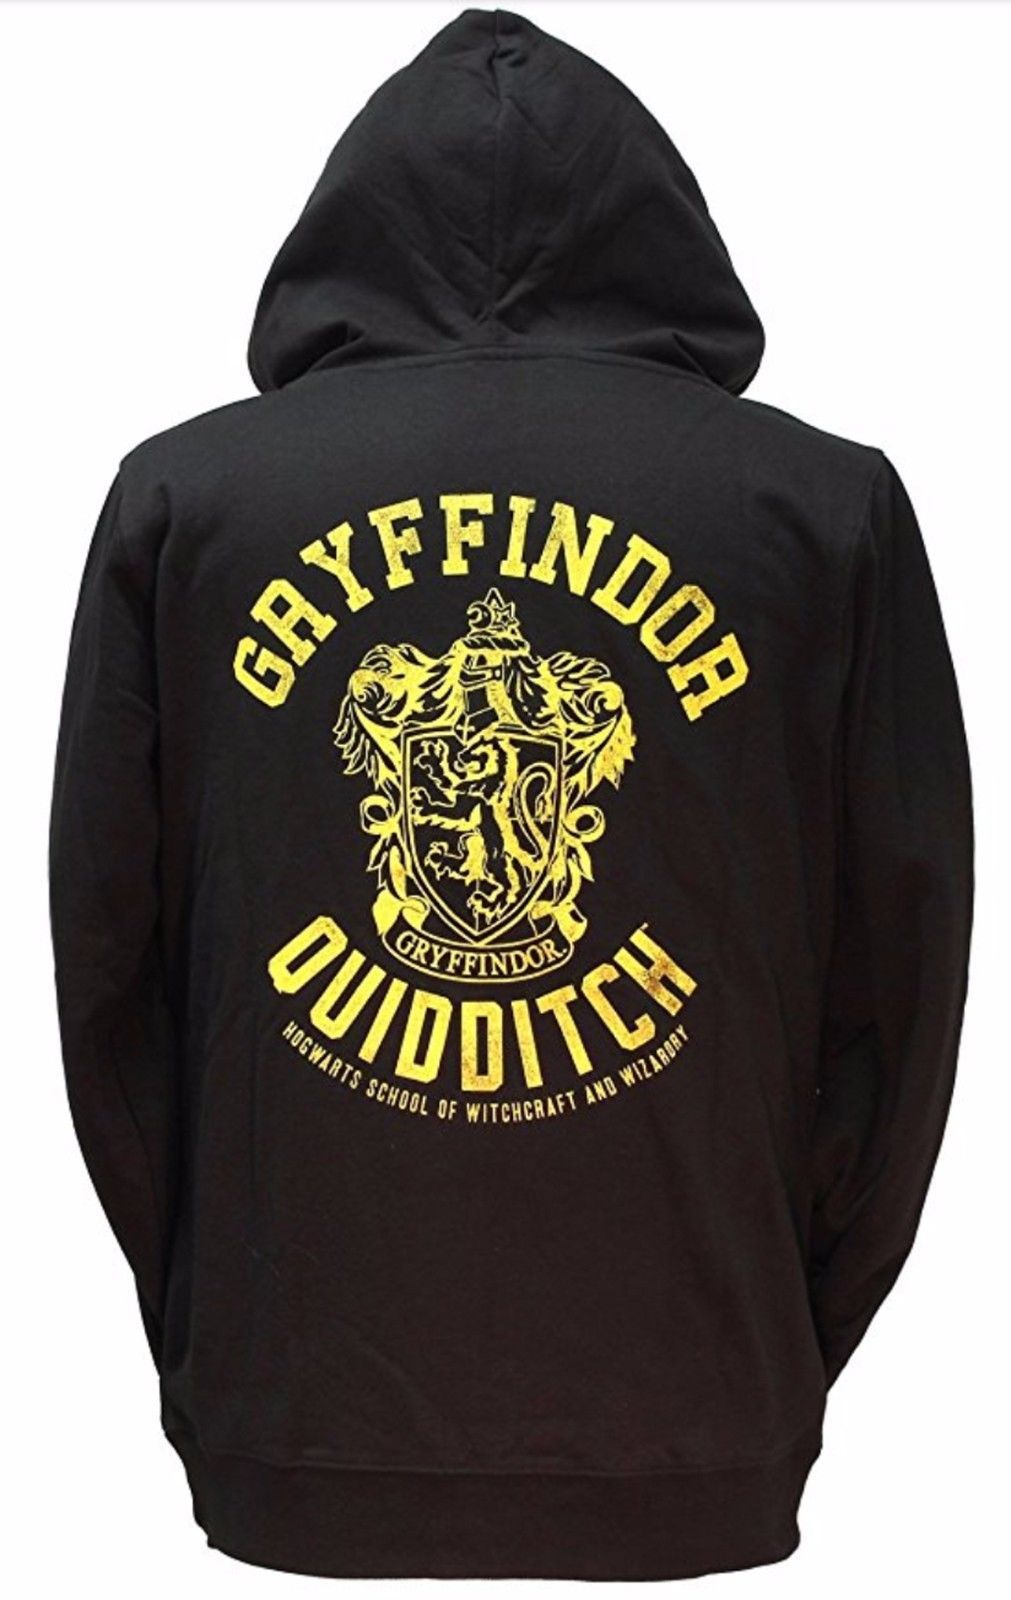 Primary image for Harry Potter Gryffindor Quidditch Zip Up Hoodie - Size M - Black